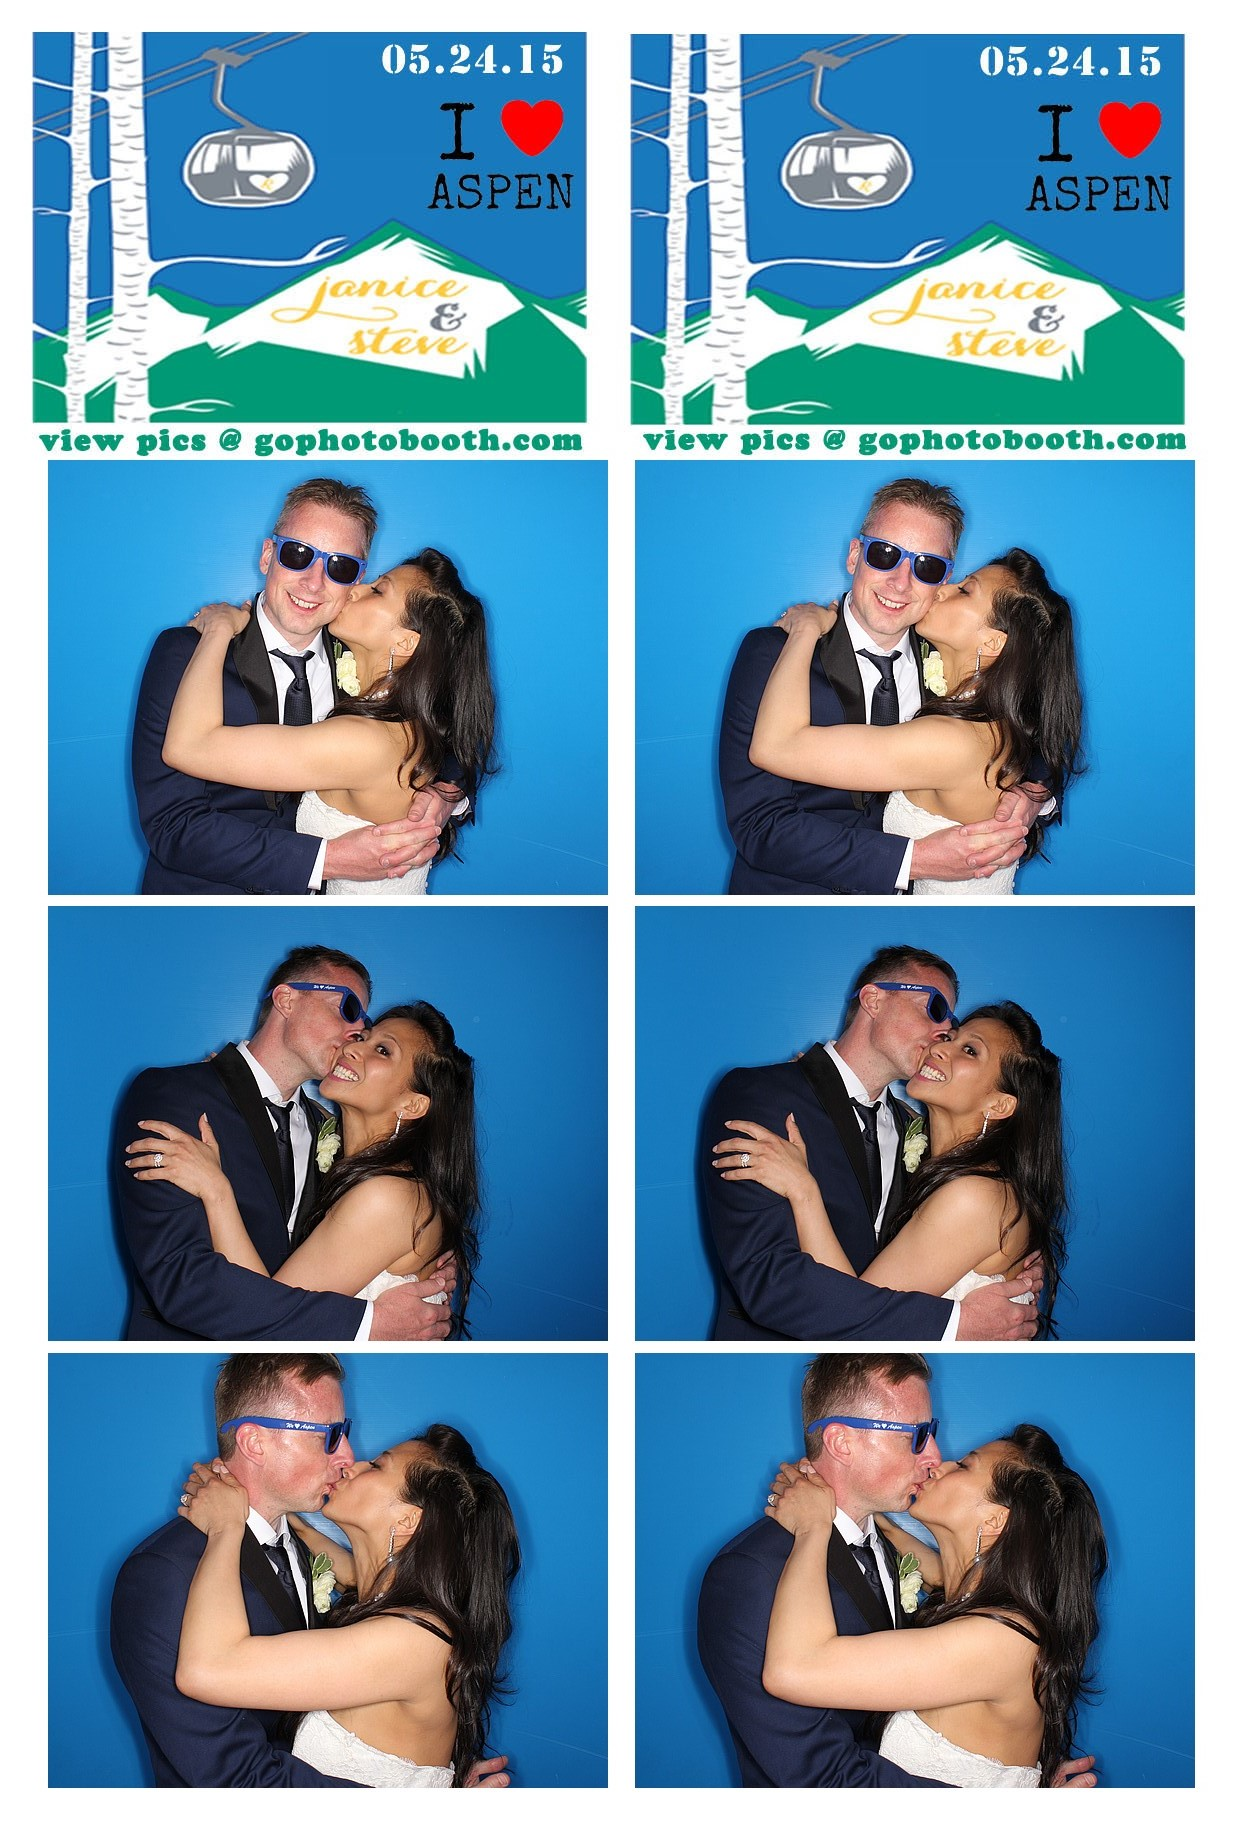 Janice and Steve's Aspen Photo Booth 5/24/15